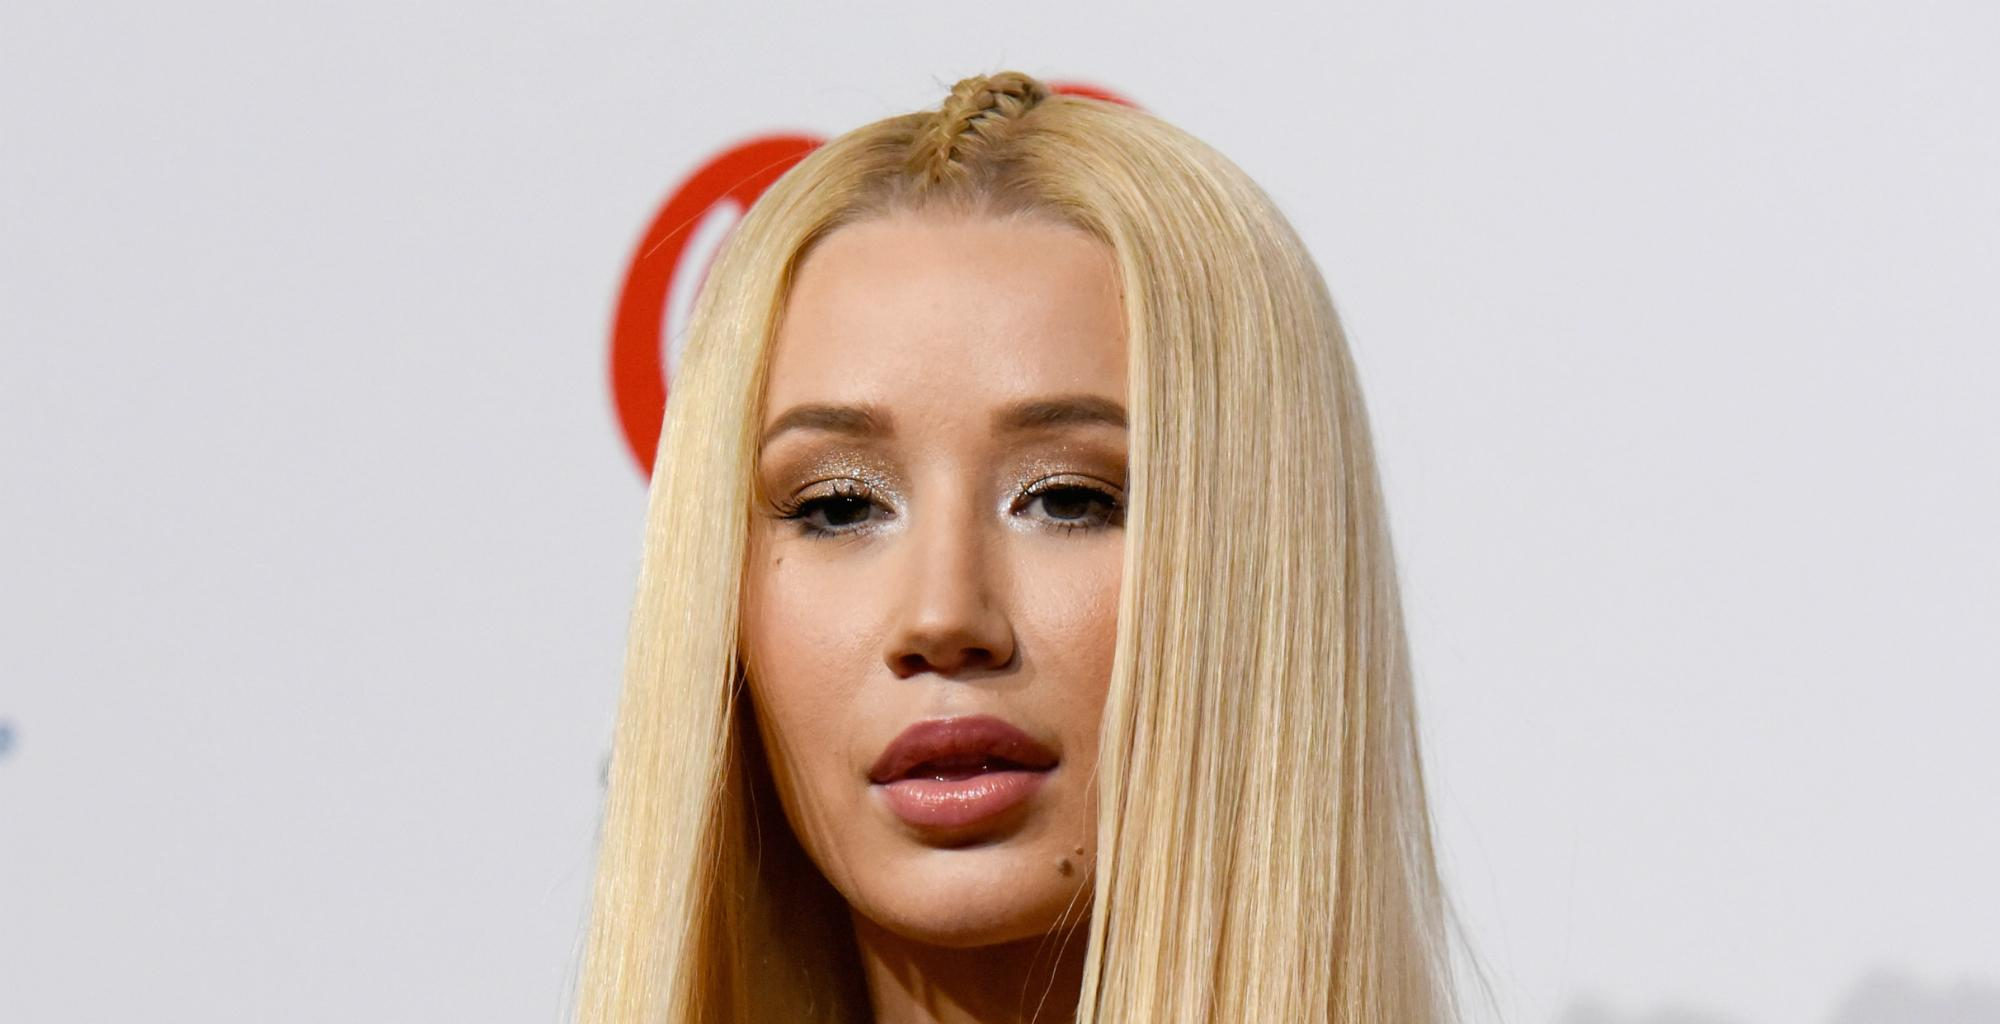 Iggy Azalea Reportedly Ready To Date Again But She's More 'Selective' - Details!